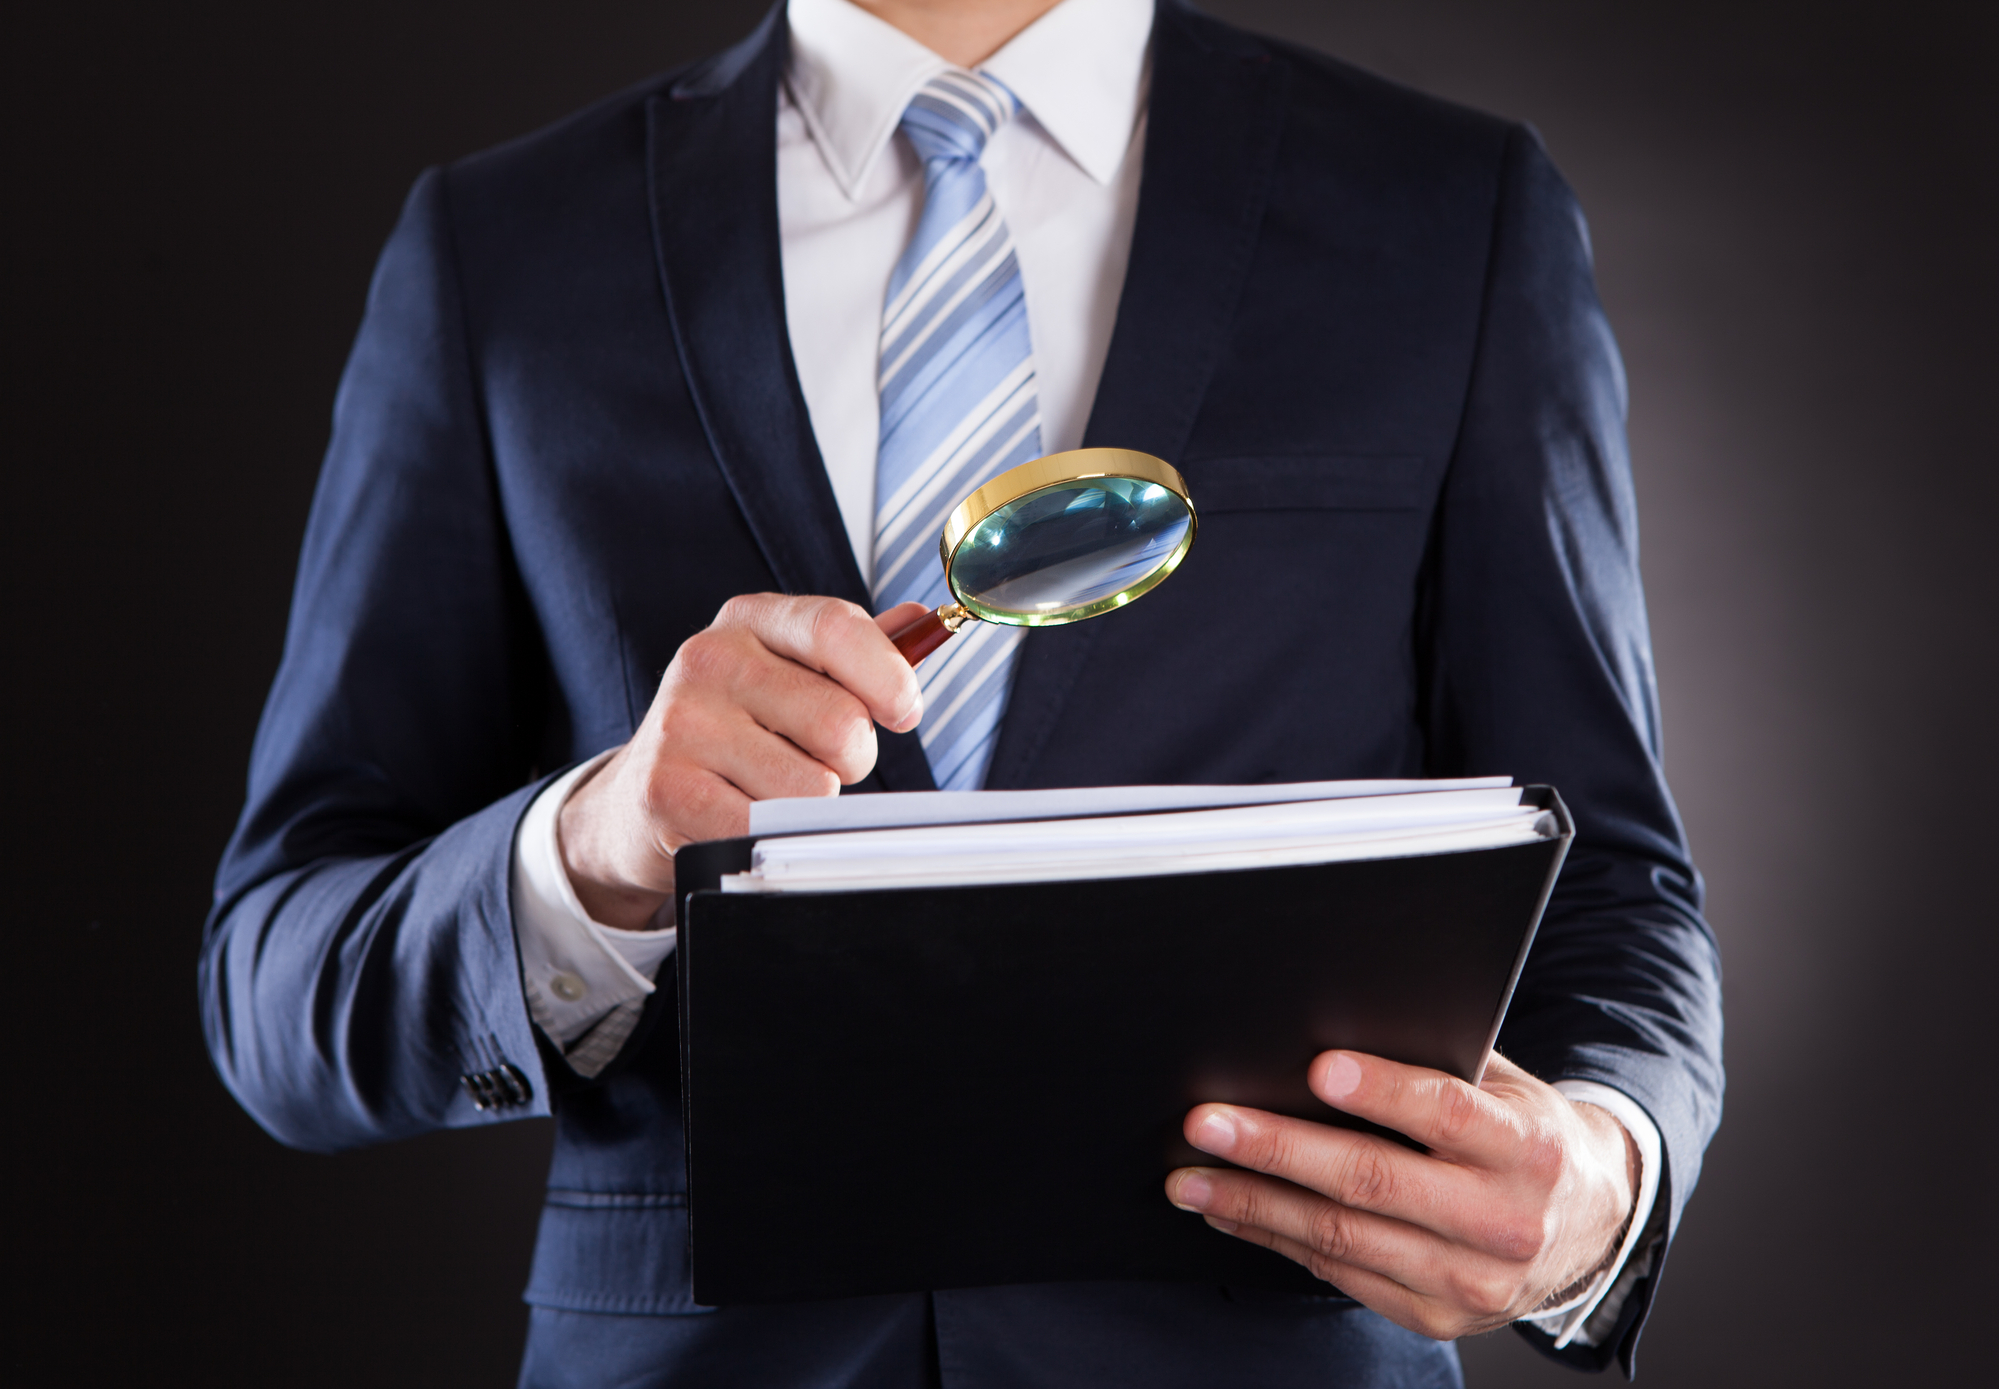 Businessman Examining Documents With Magnifying Glass